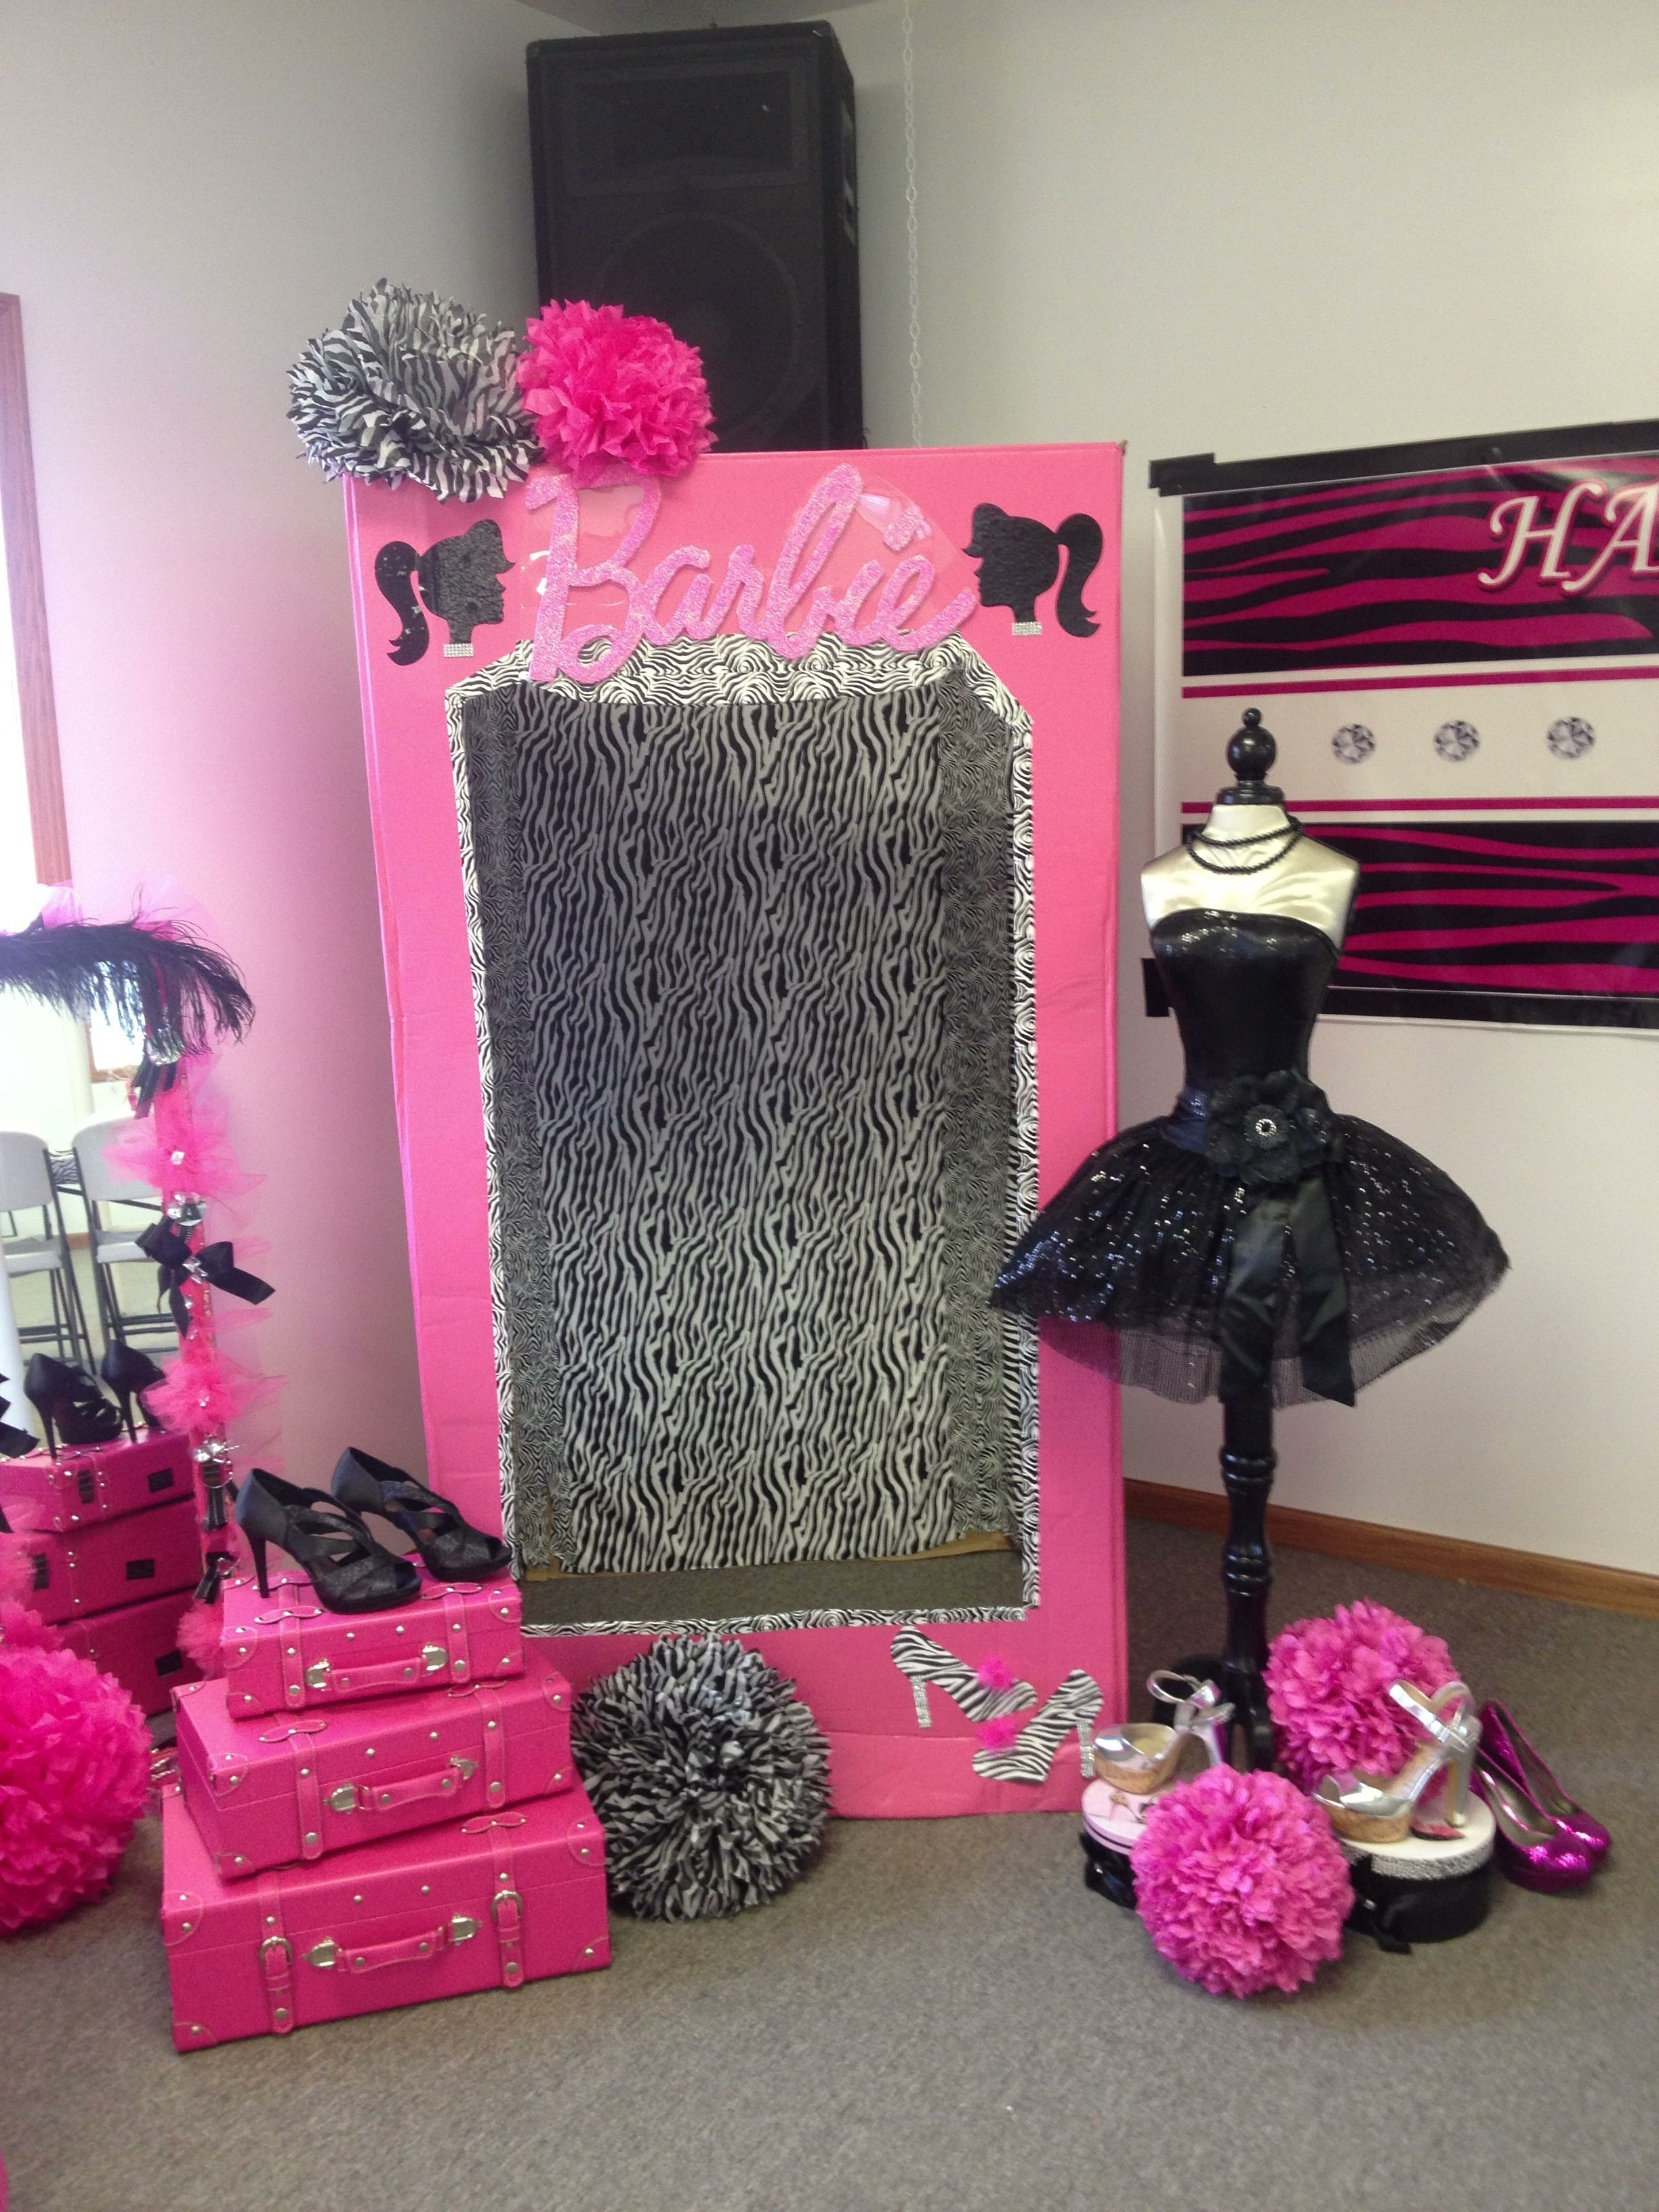 Photobox Party Barbie Photo Box Barbie Barbie Birthday Party Barbie